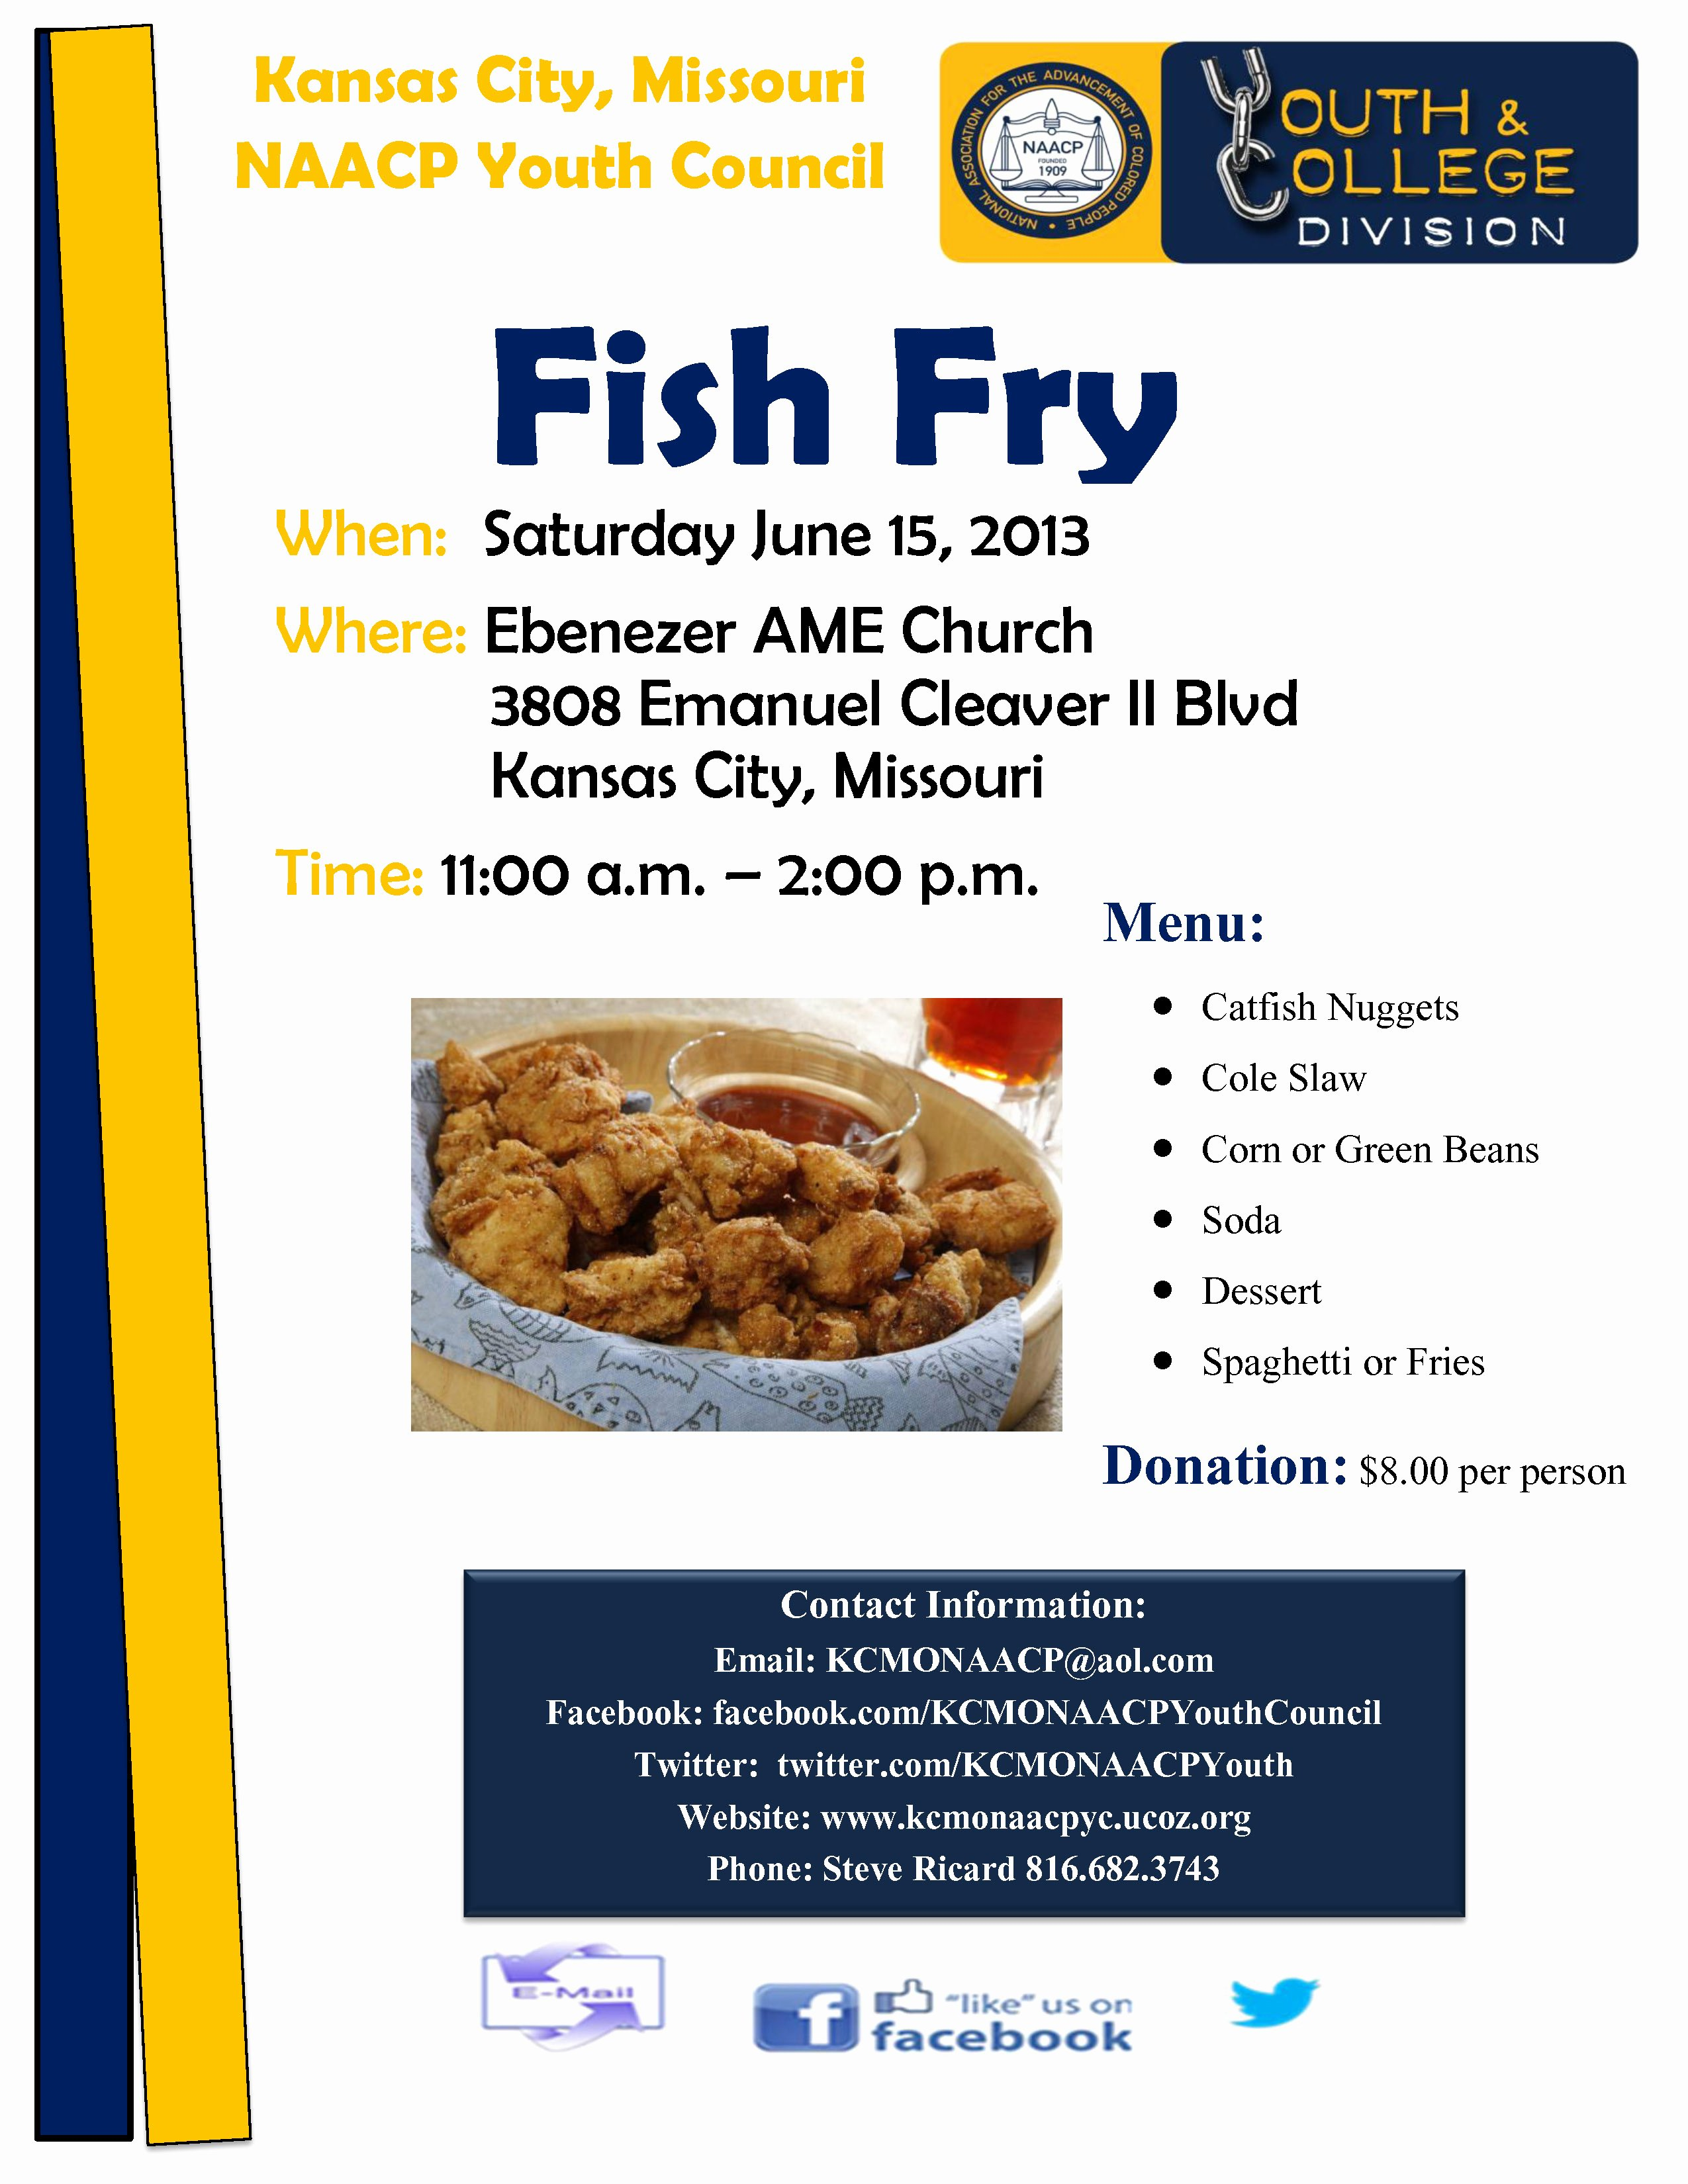 Fish Fry Flyer Template Elegant Kcmo Naacp Youth Council Fish Fry with Fish Fry Clipart